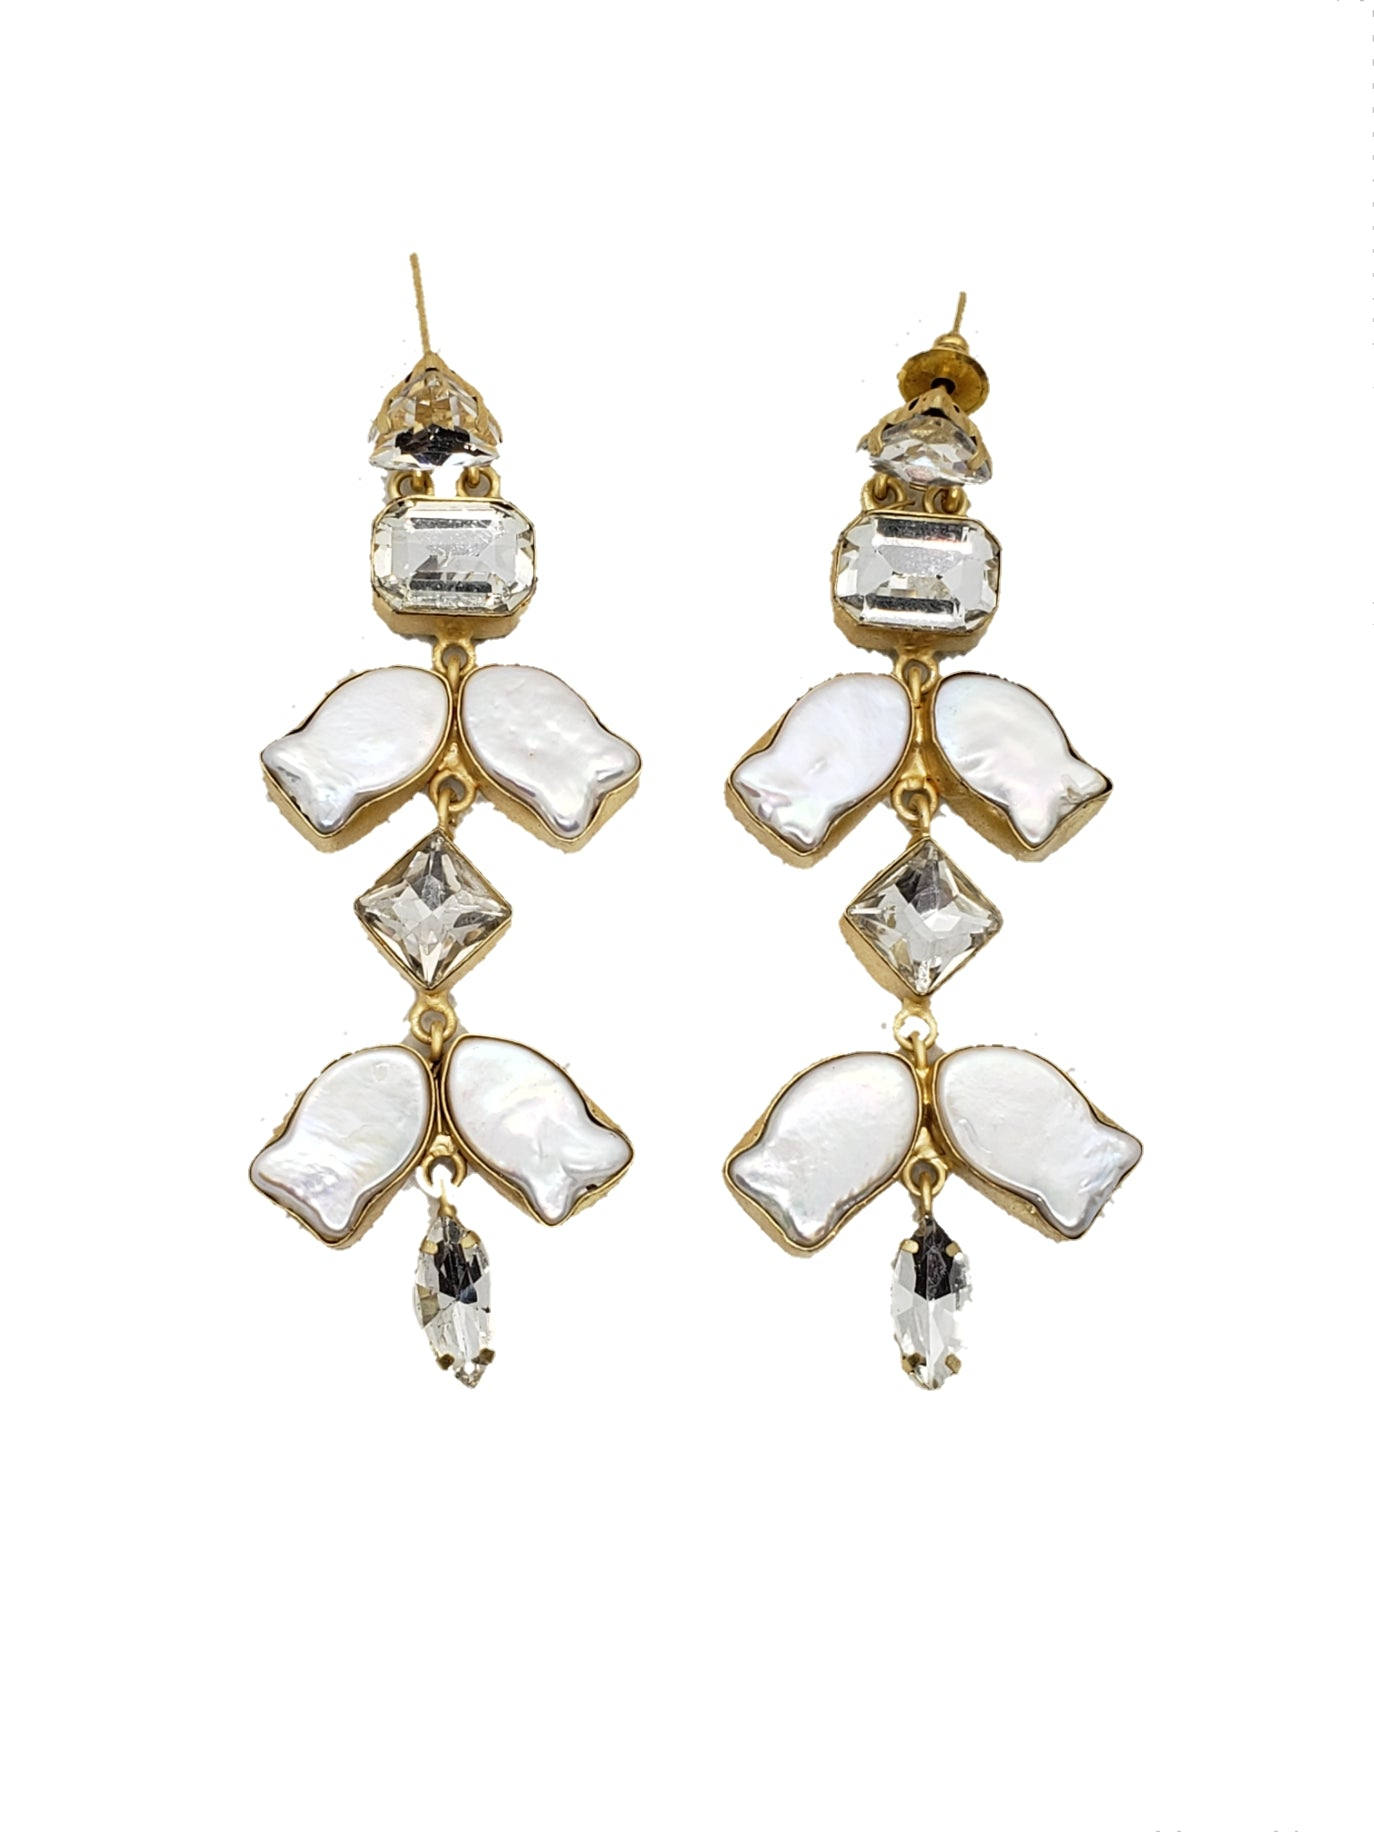 Mother of pearl and Cubic Zirconia Dangle Earrings - The Bauble Shop